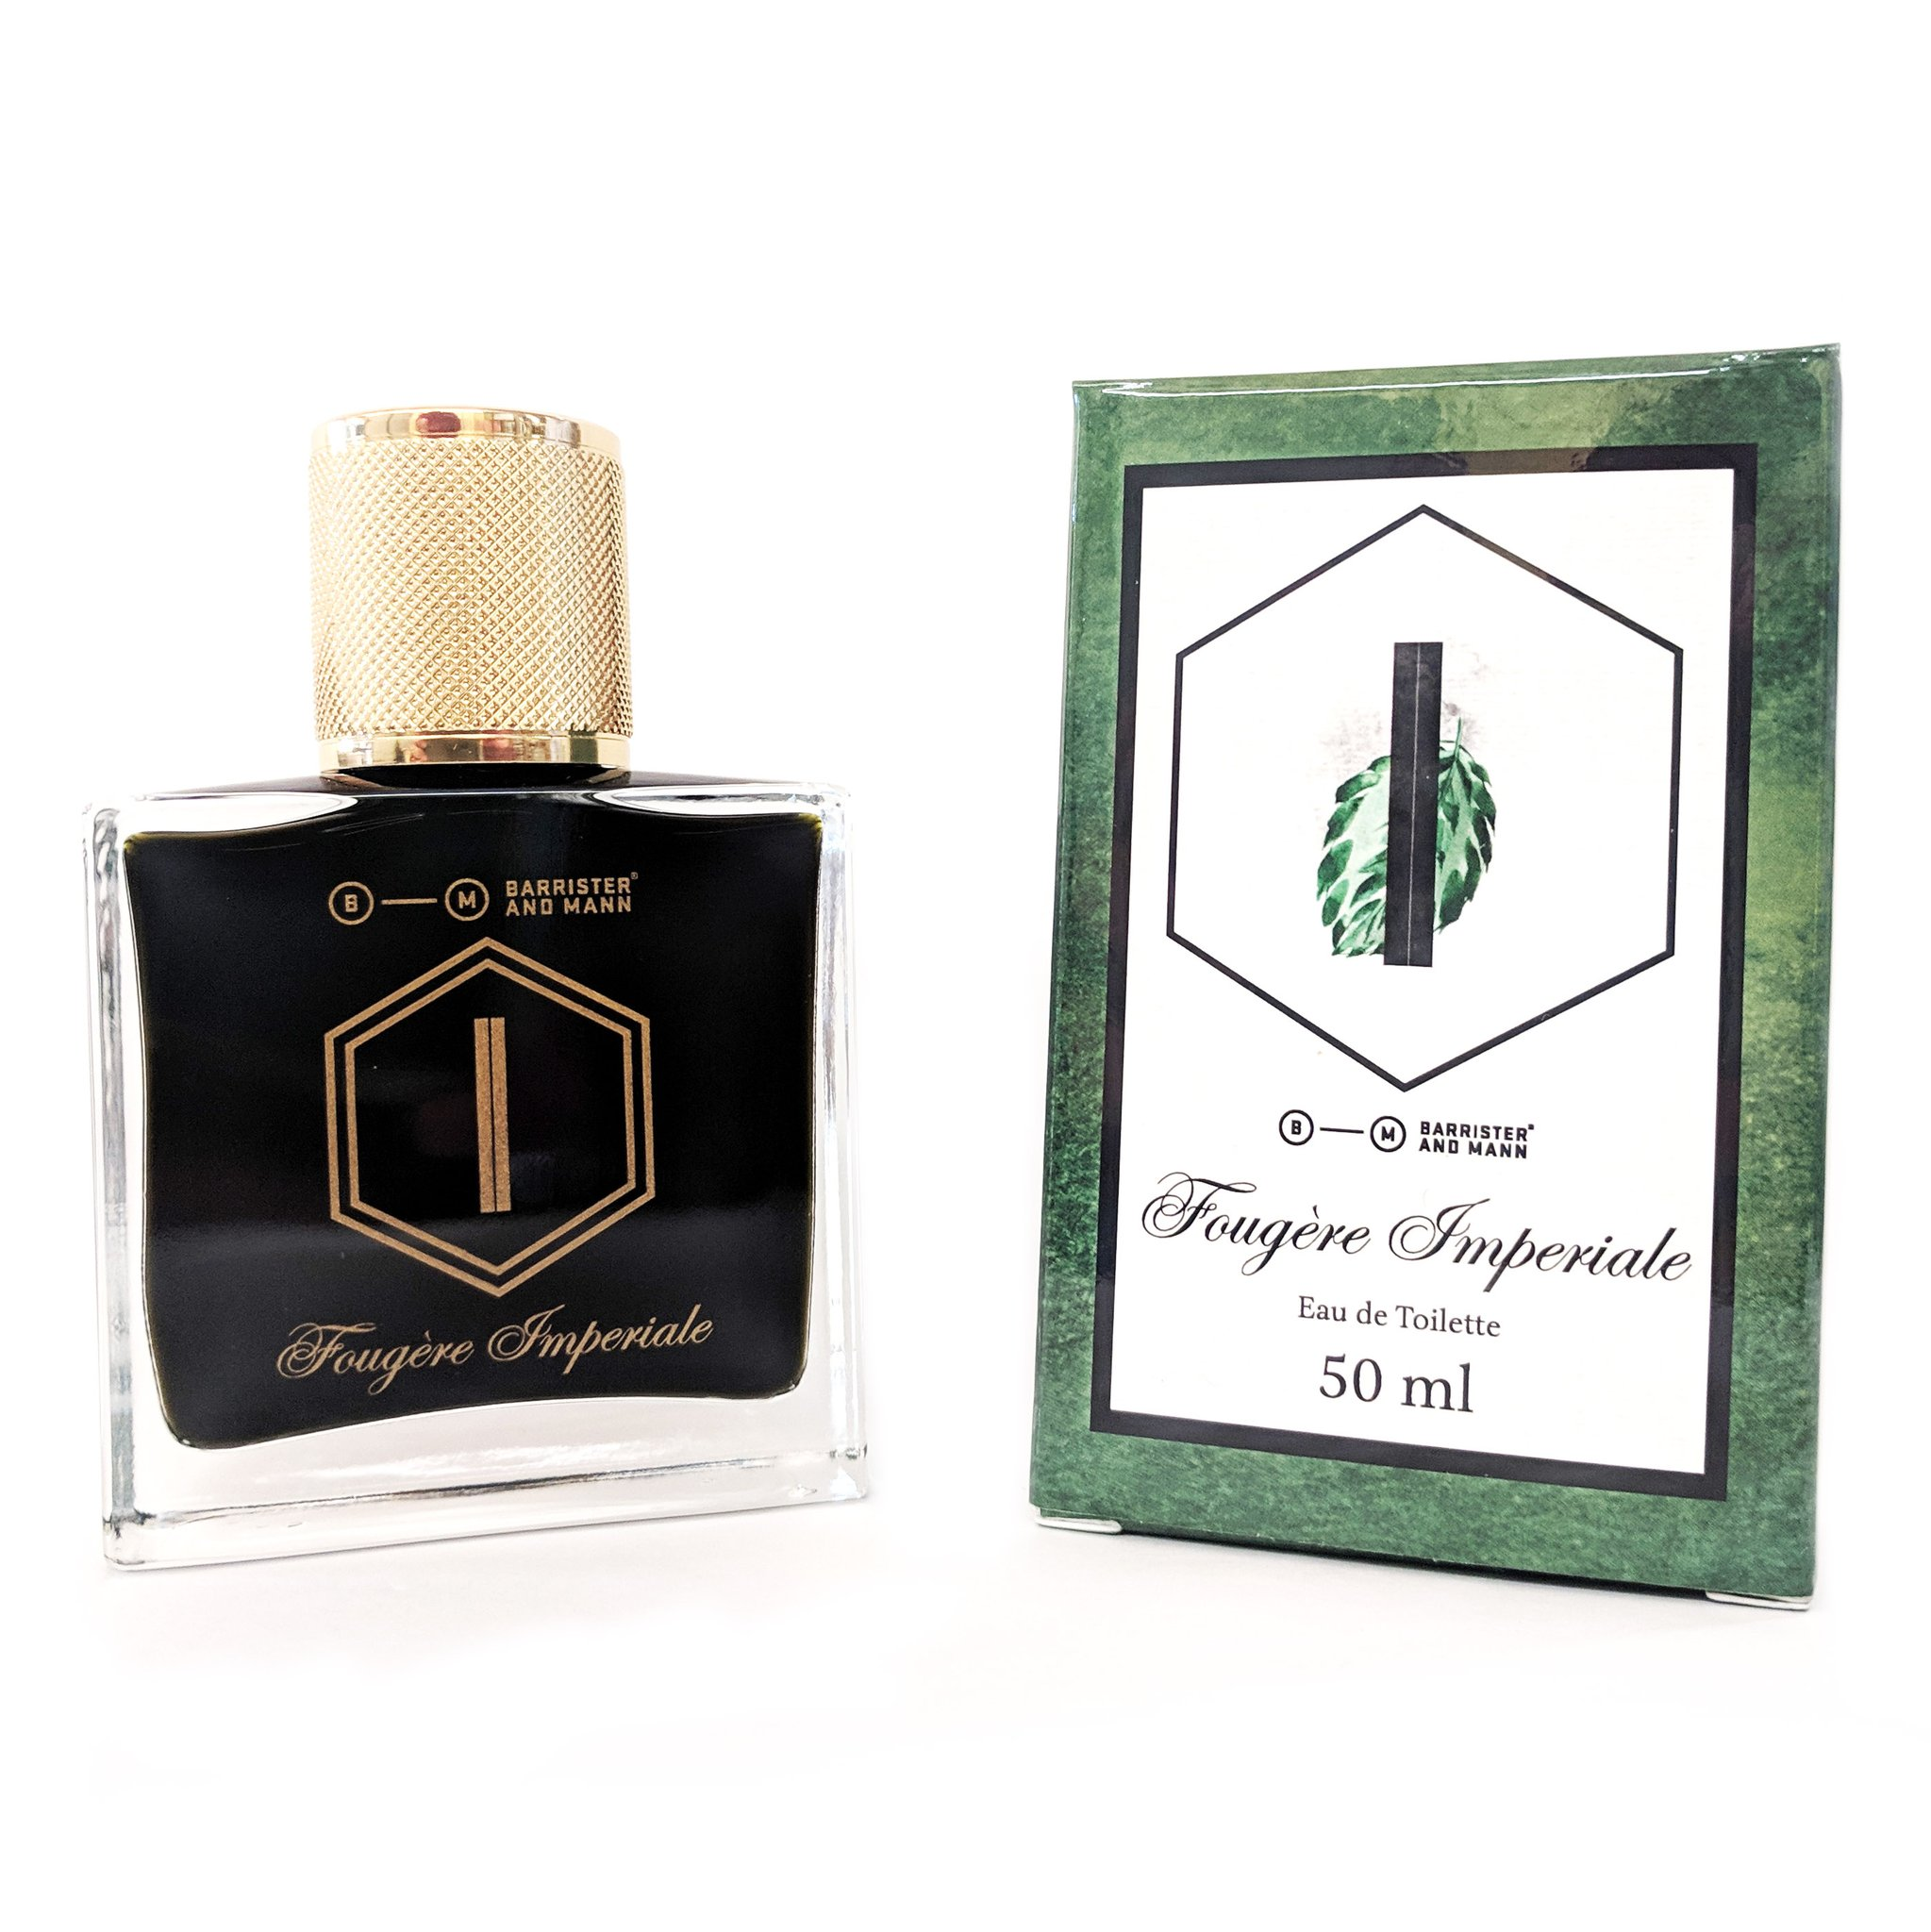 Barrister and Mann - Fougère Imperiale - Eau de Toilette image